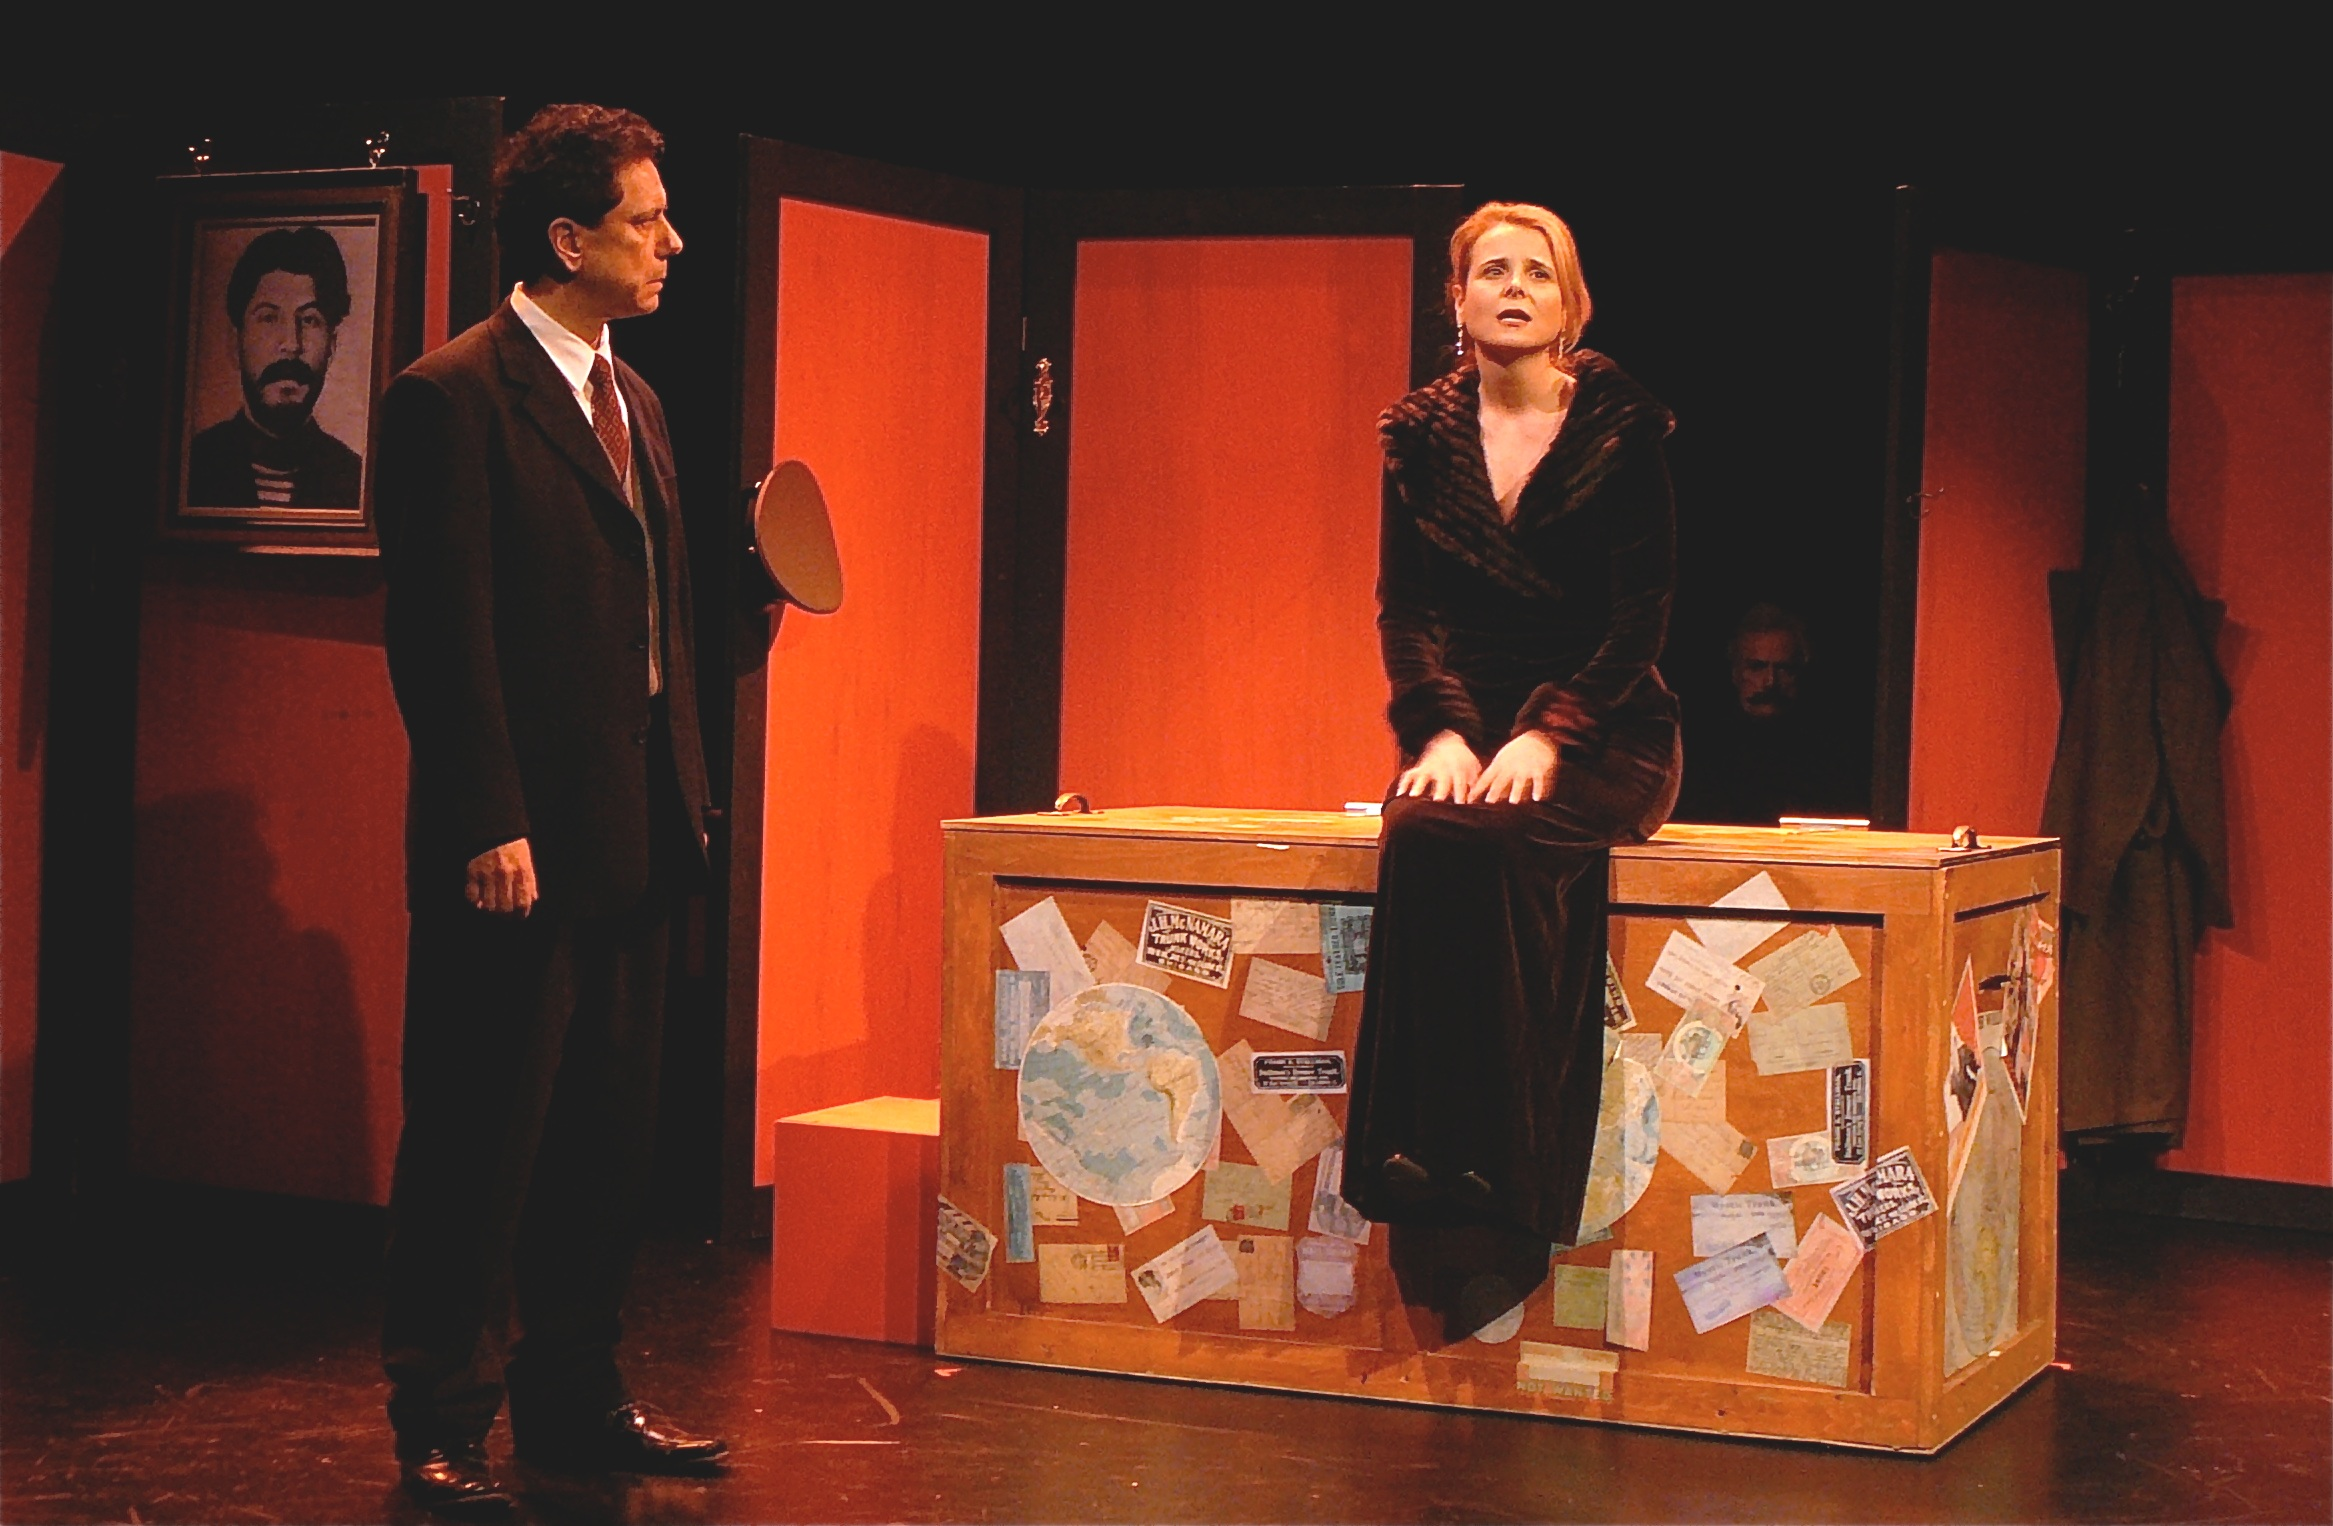 """A NIGHT IN THE KREMLIN,"" WITH PETER TEDESCHI AT MIDTOWN INTERNATIONAL THEATRE FESTIVAL"